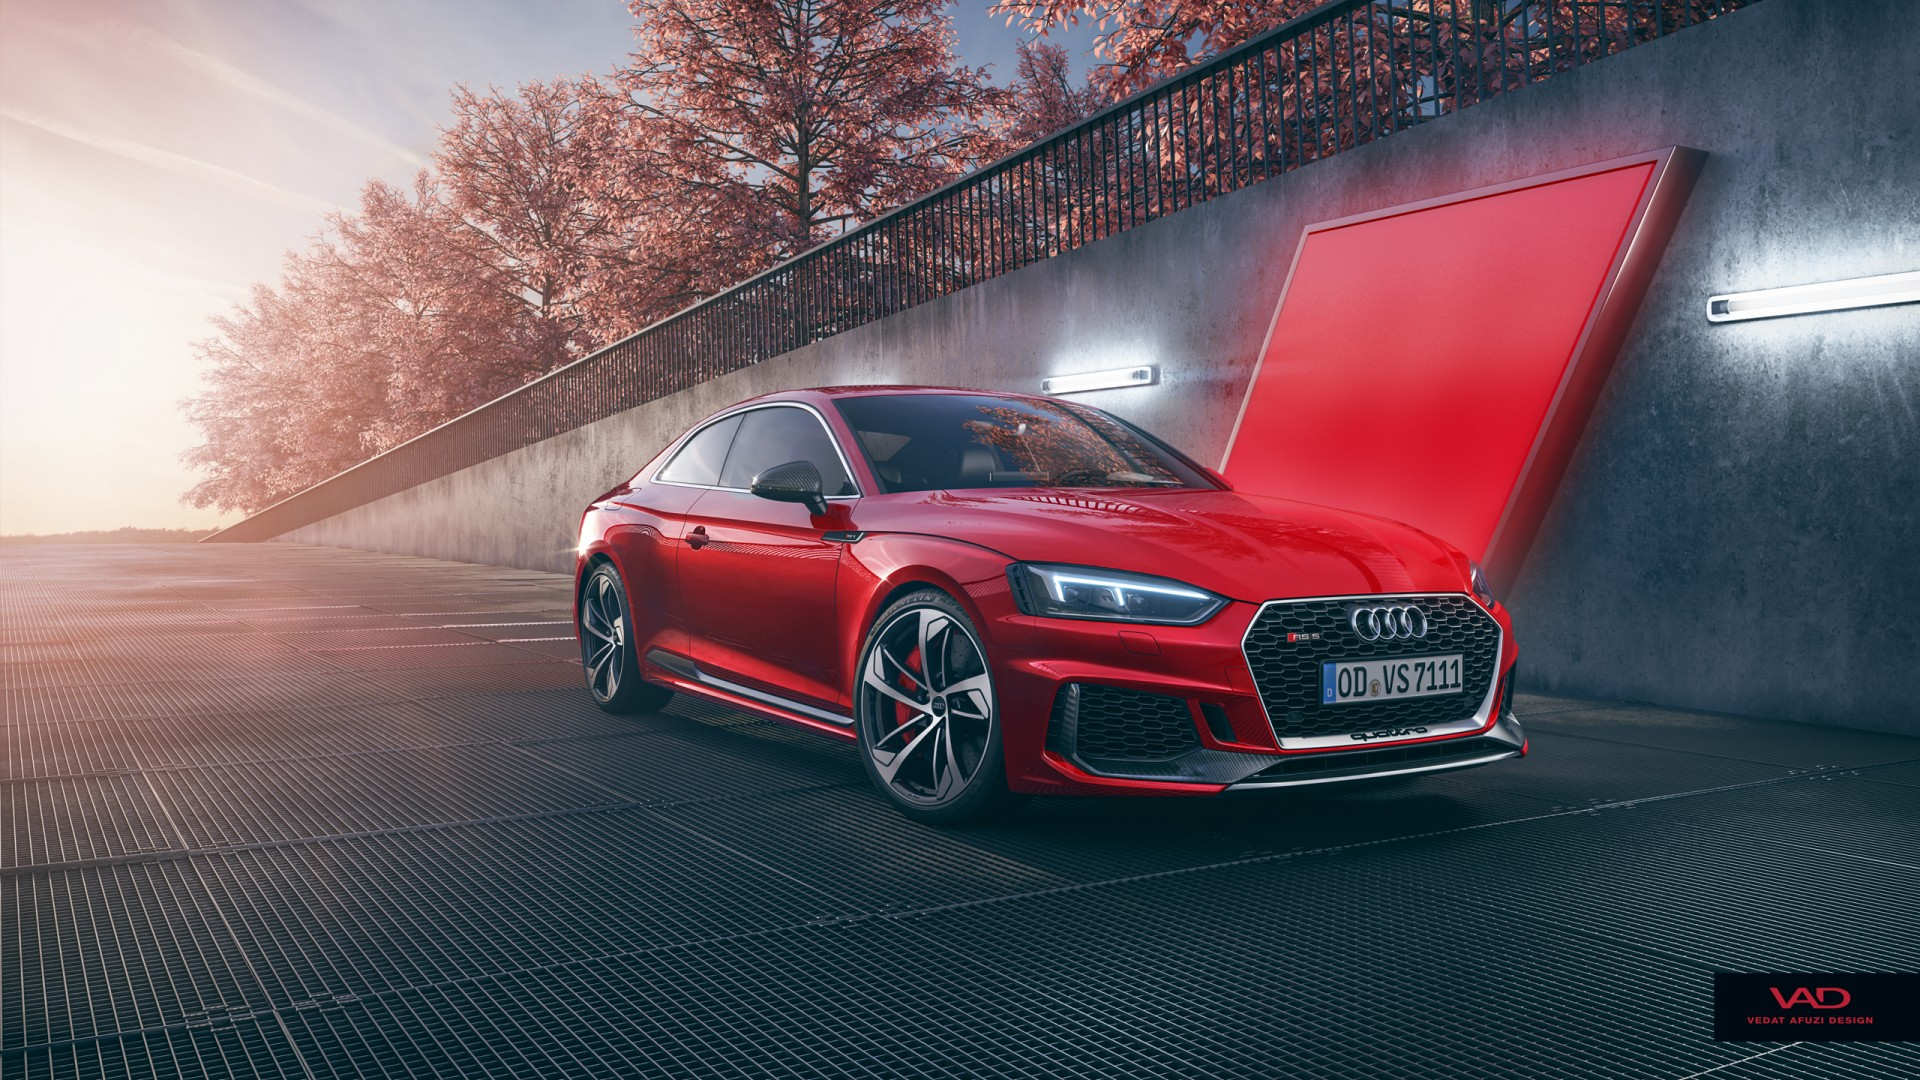 audi rs5 coupe cgi wallpaper hd car wallpapers id 8400. Black Bedroom Furniture Sets. Home Design Ideas